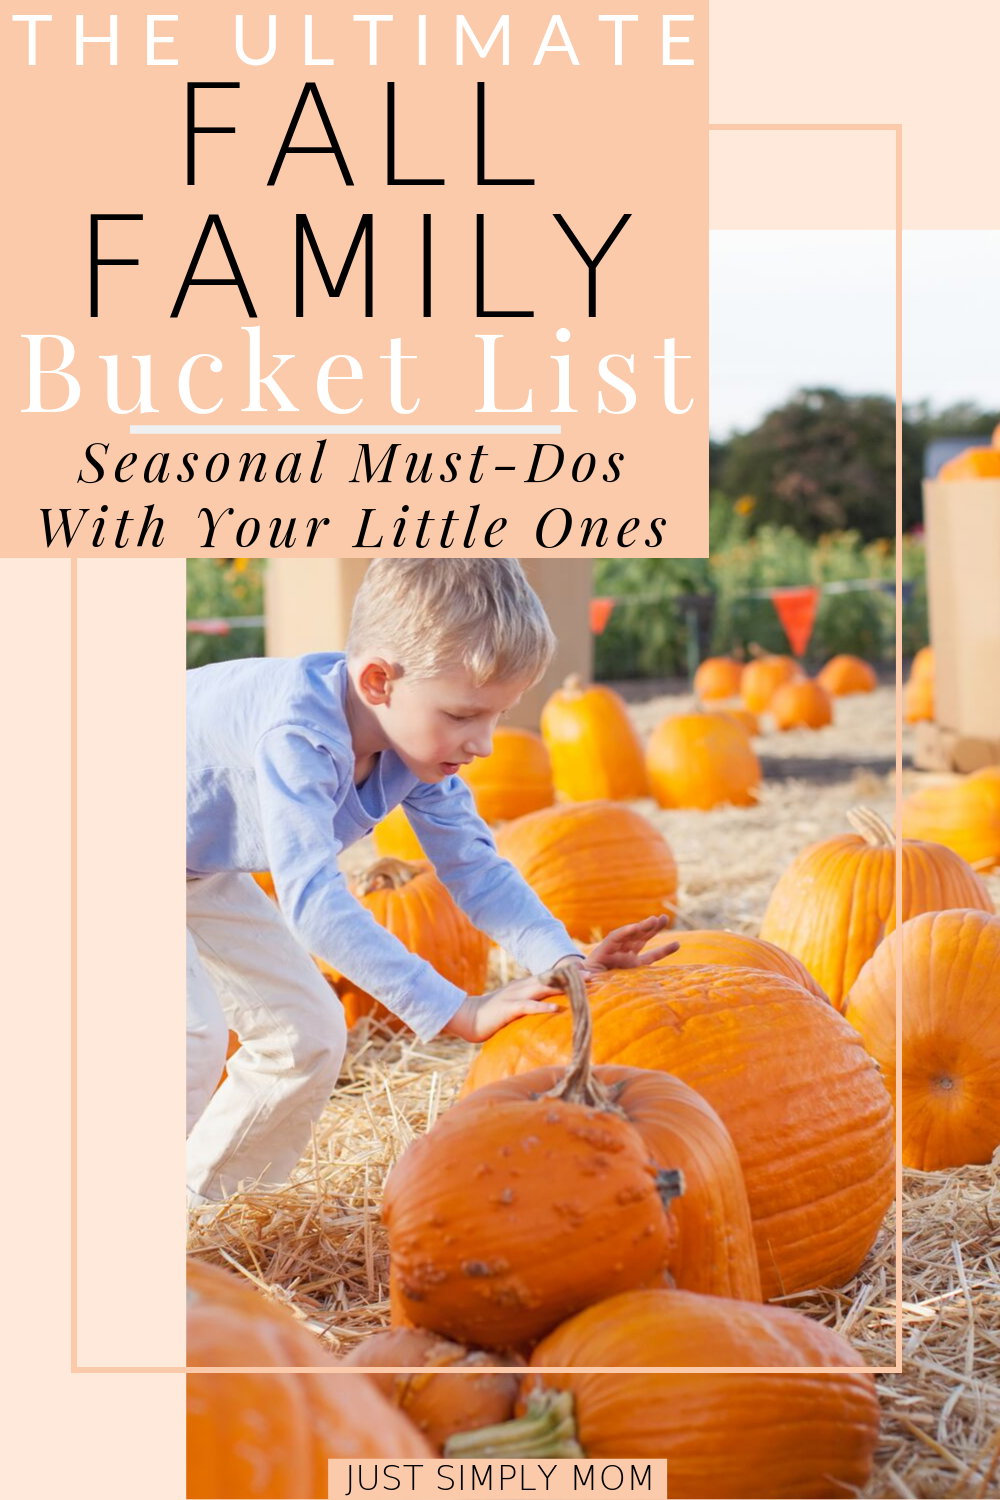 The Ultimate Fall Family Bucket List for 2019